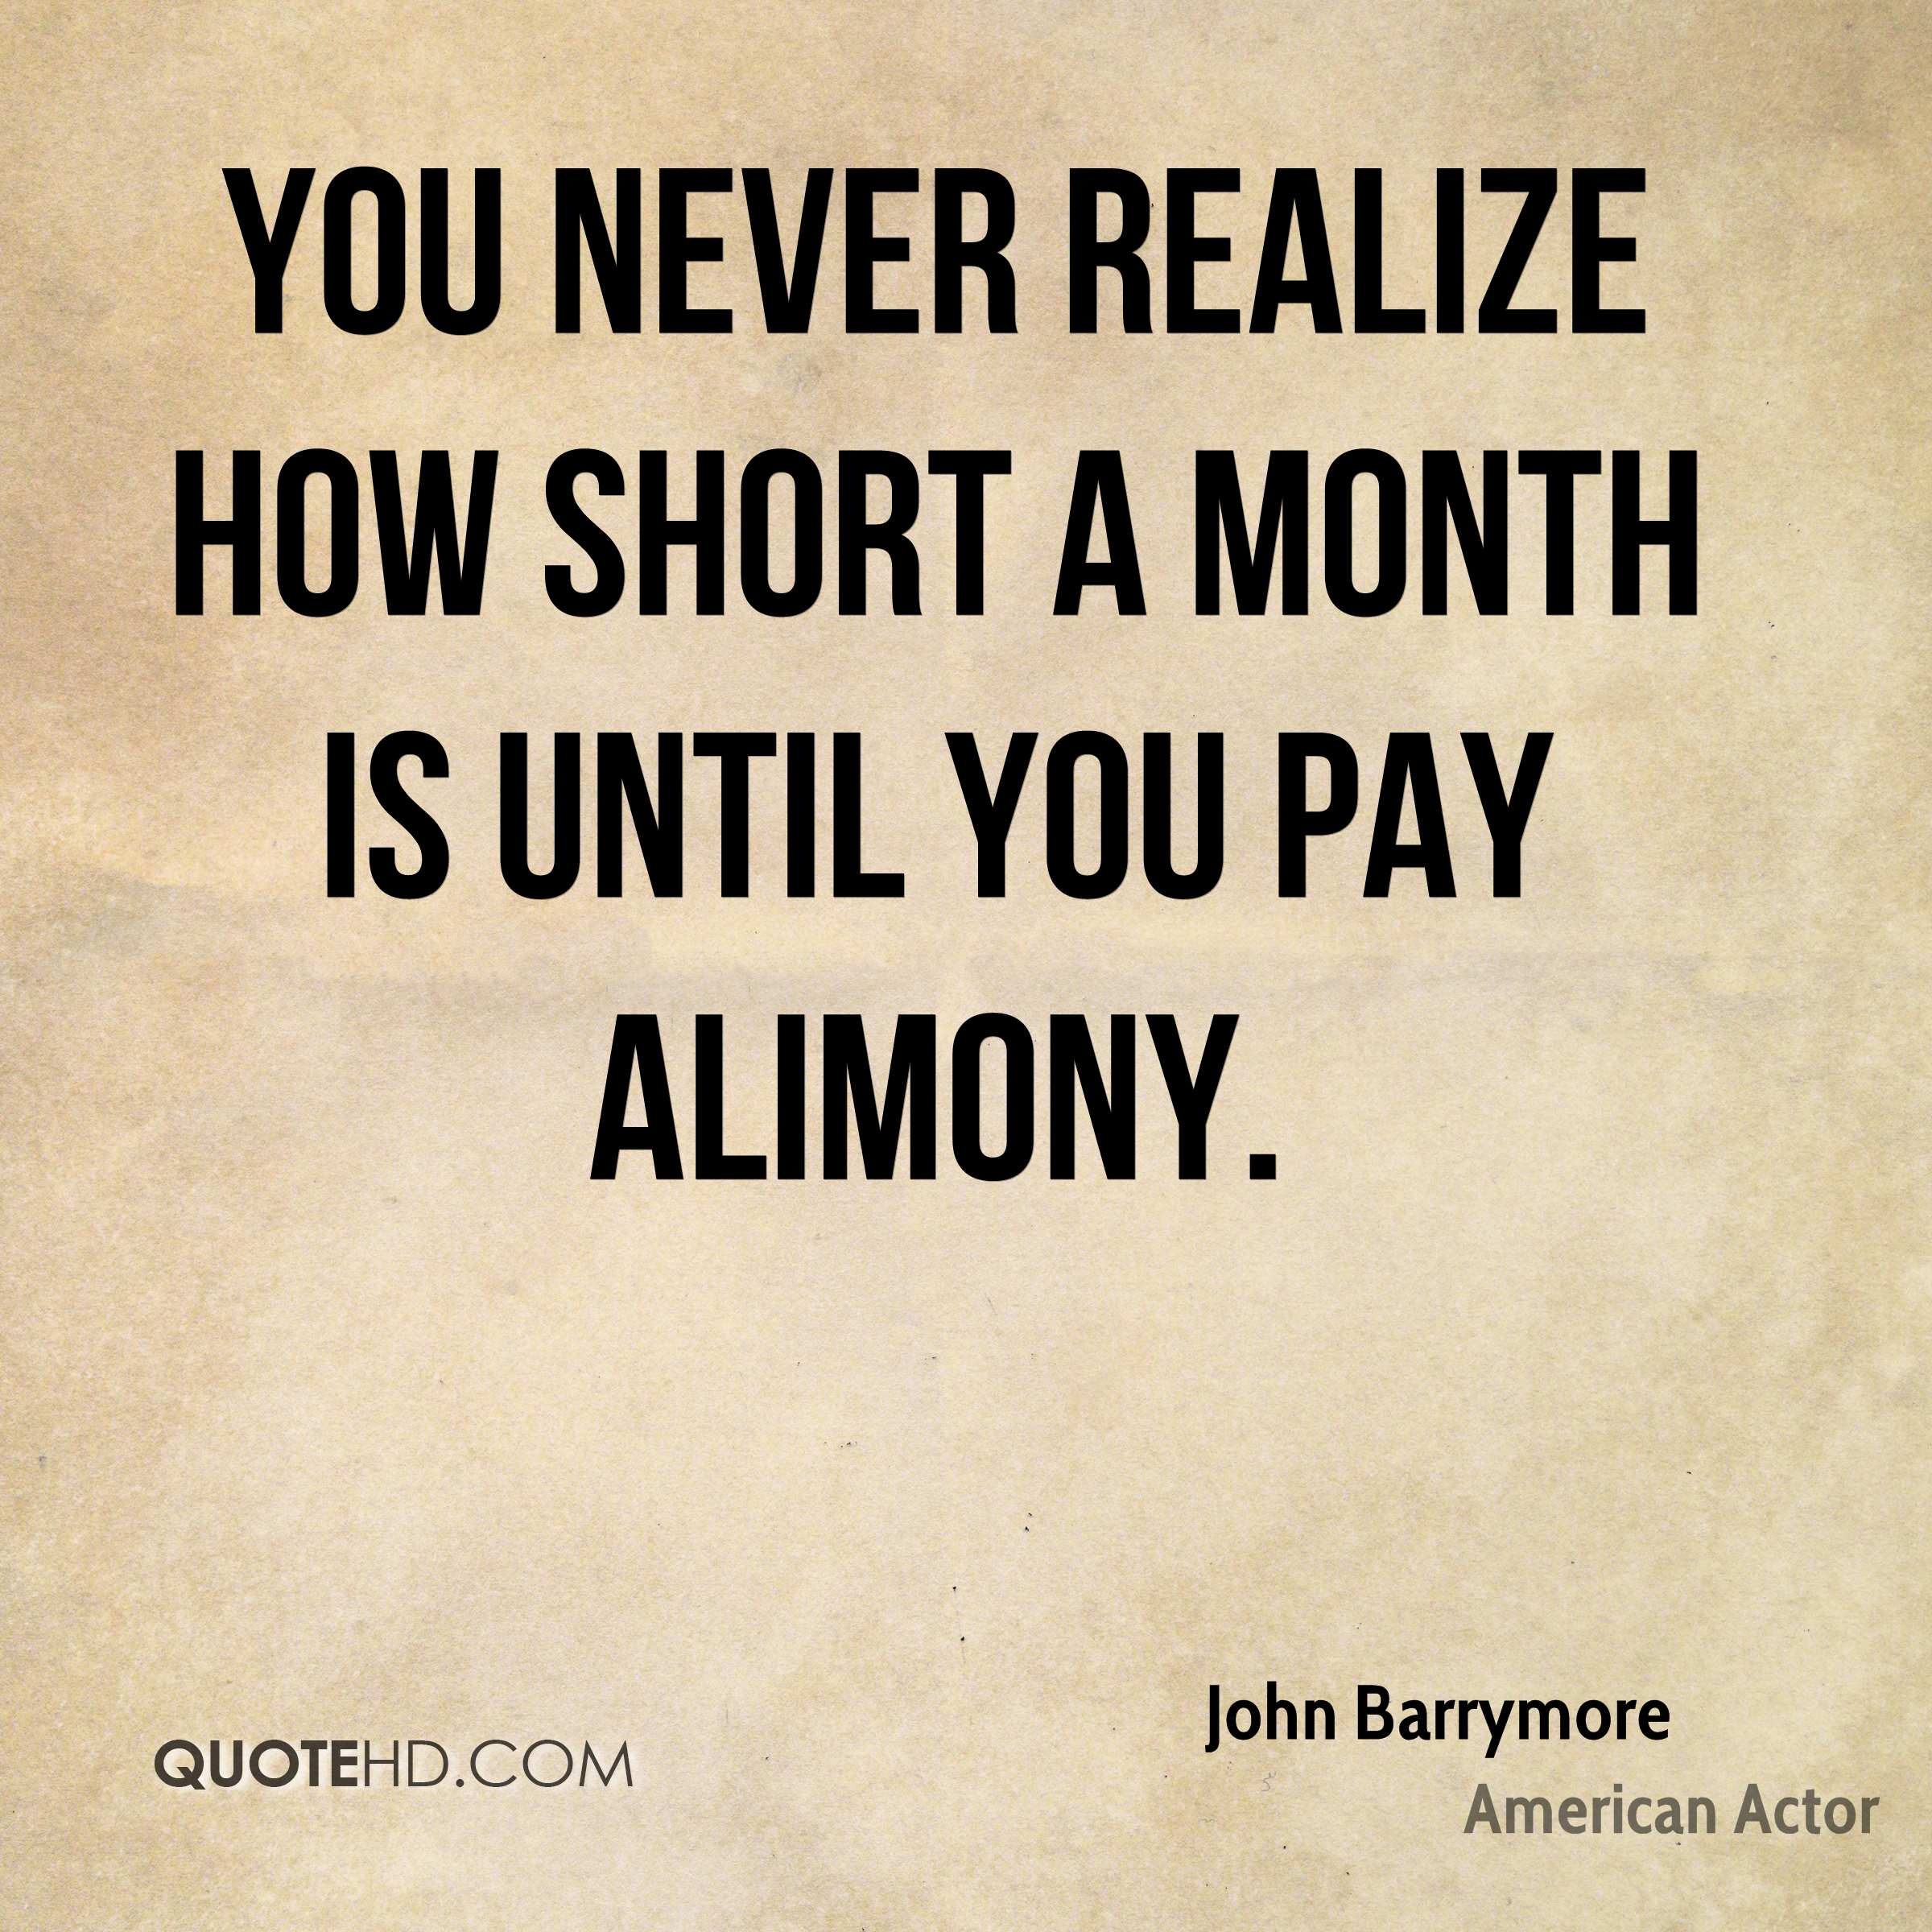 You never realize how short a month is until you pay alimony.